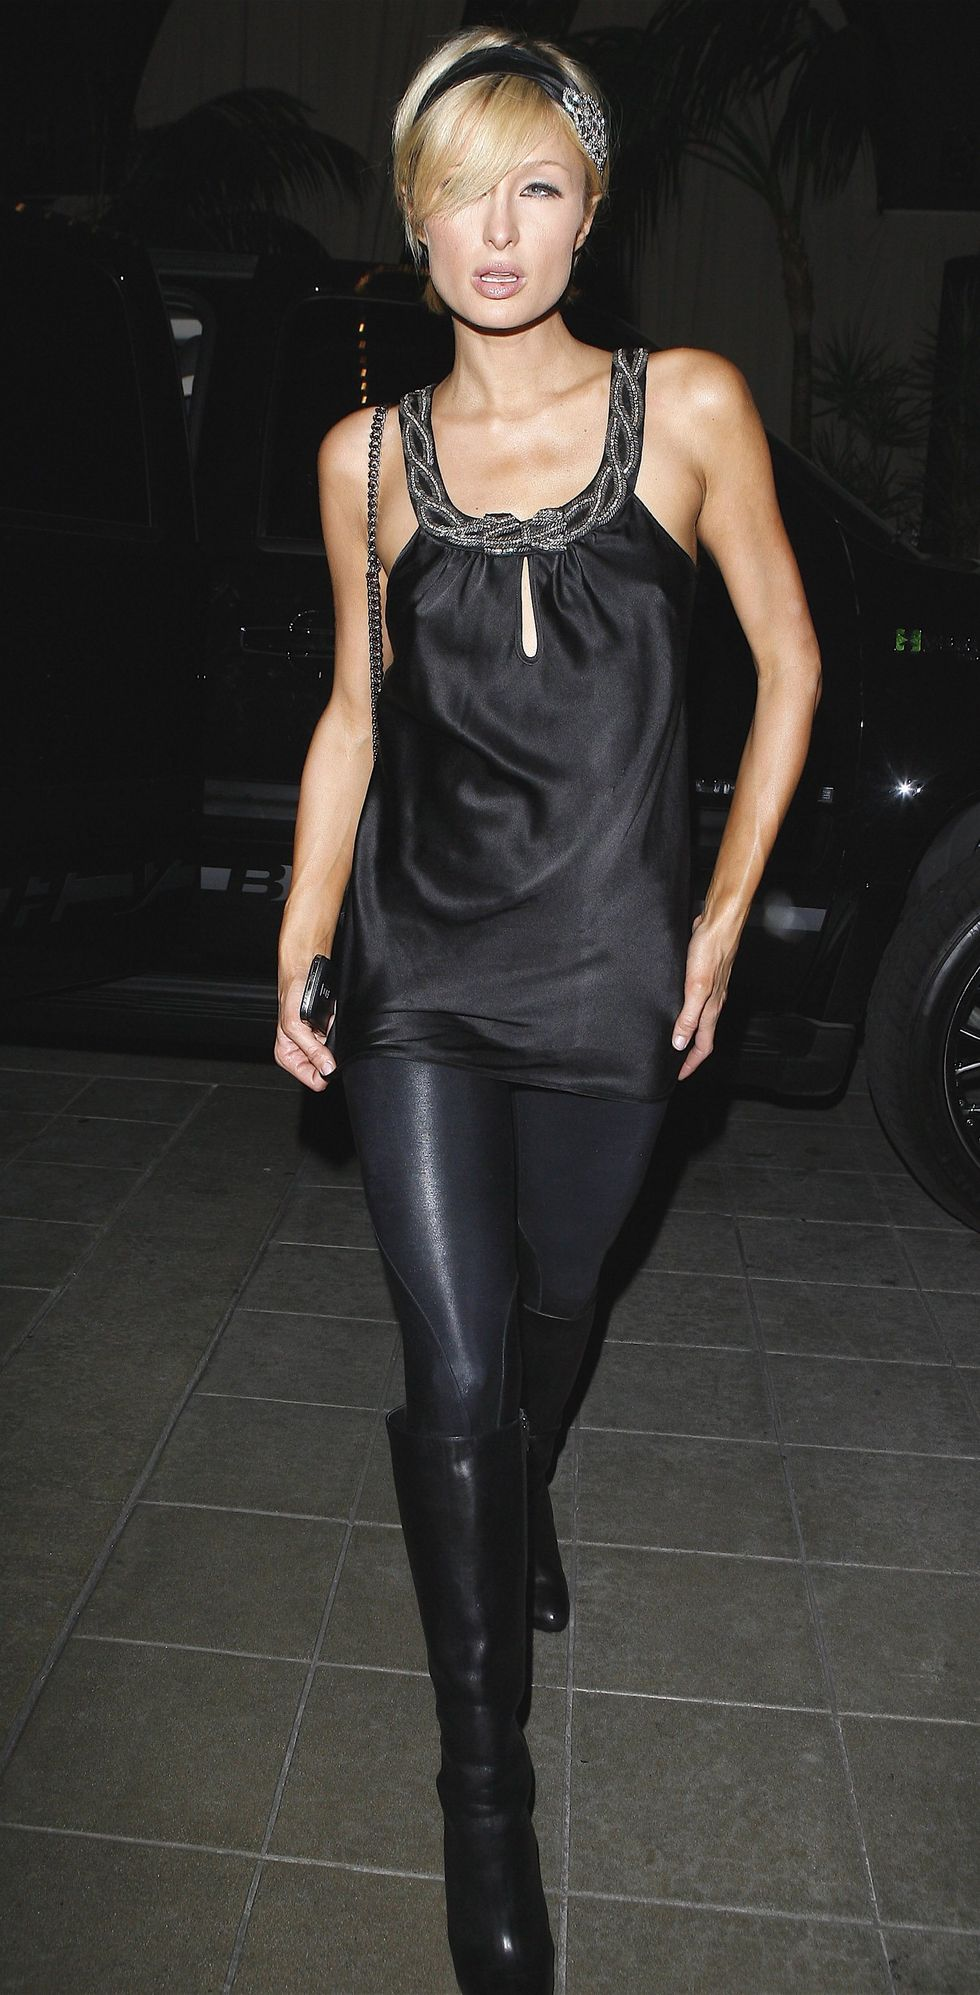 paris-hilton-at-teddys-nightclub-in-los-angeles-01